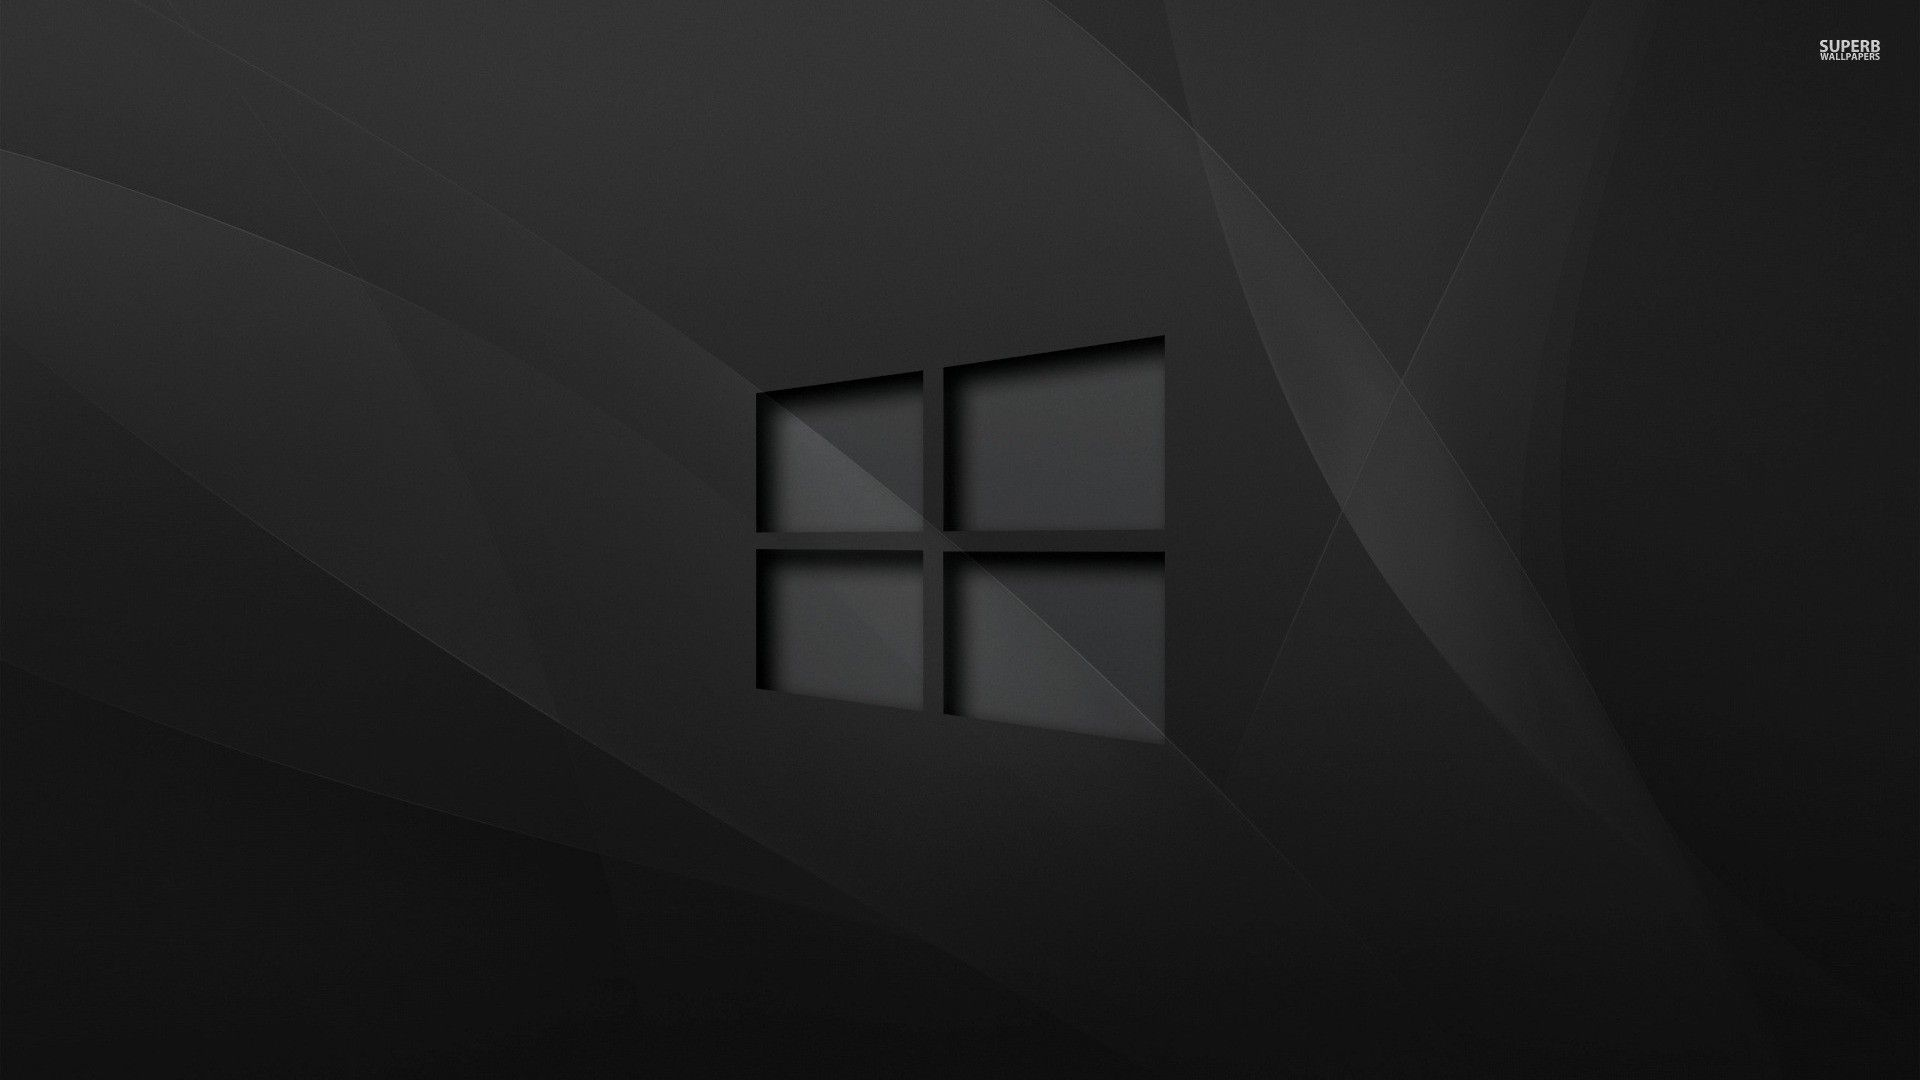 Black Windows 10 Hd Wallpapers Top Free Black Windows 10